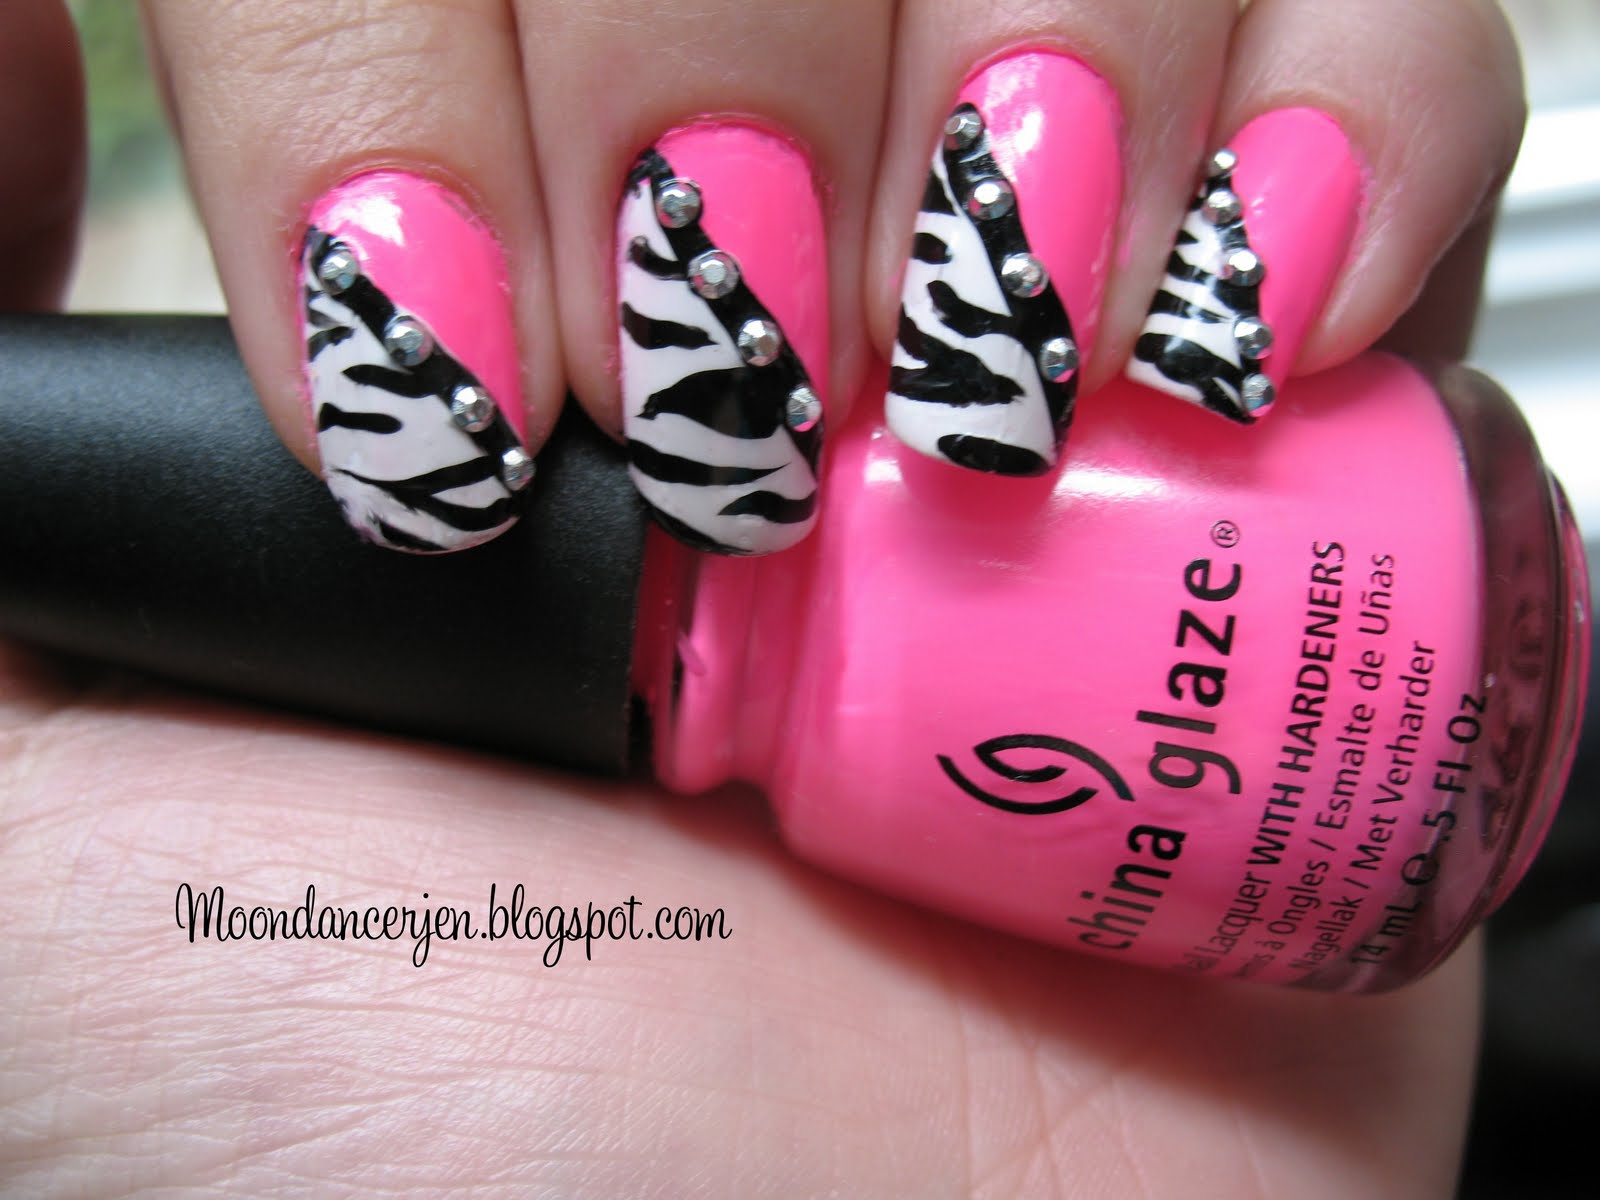 Moondancerjen's Nails: Hot Pink Zebra Nails